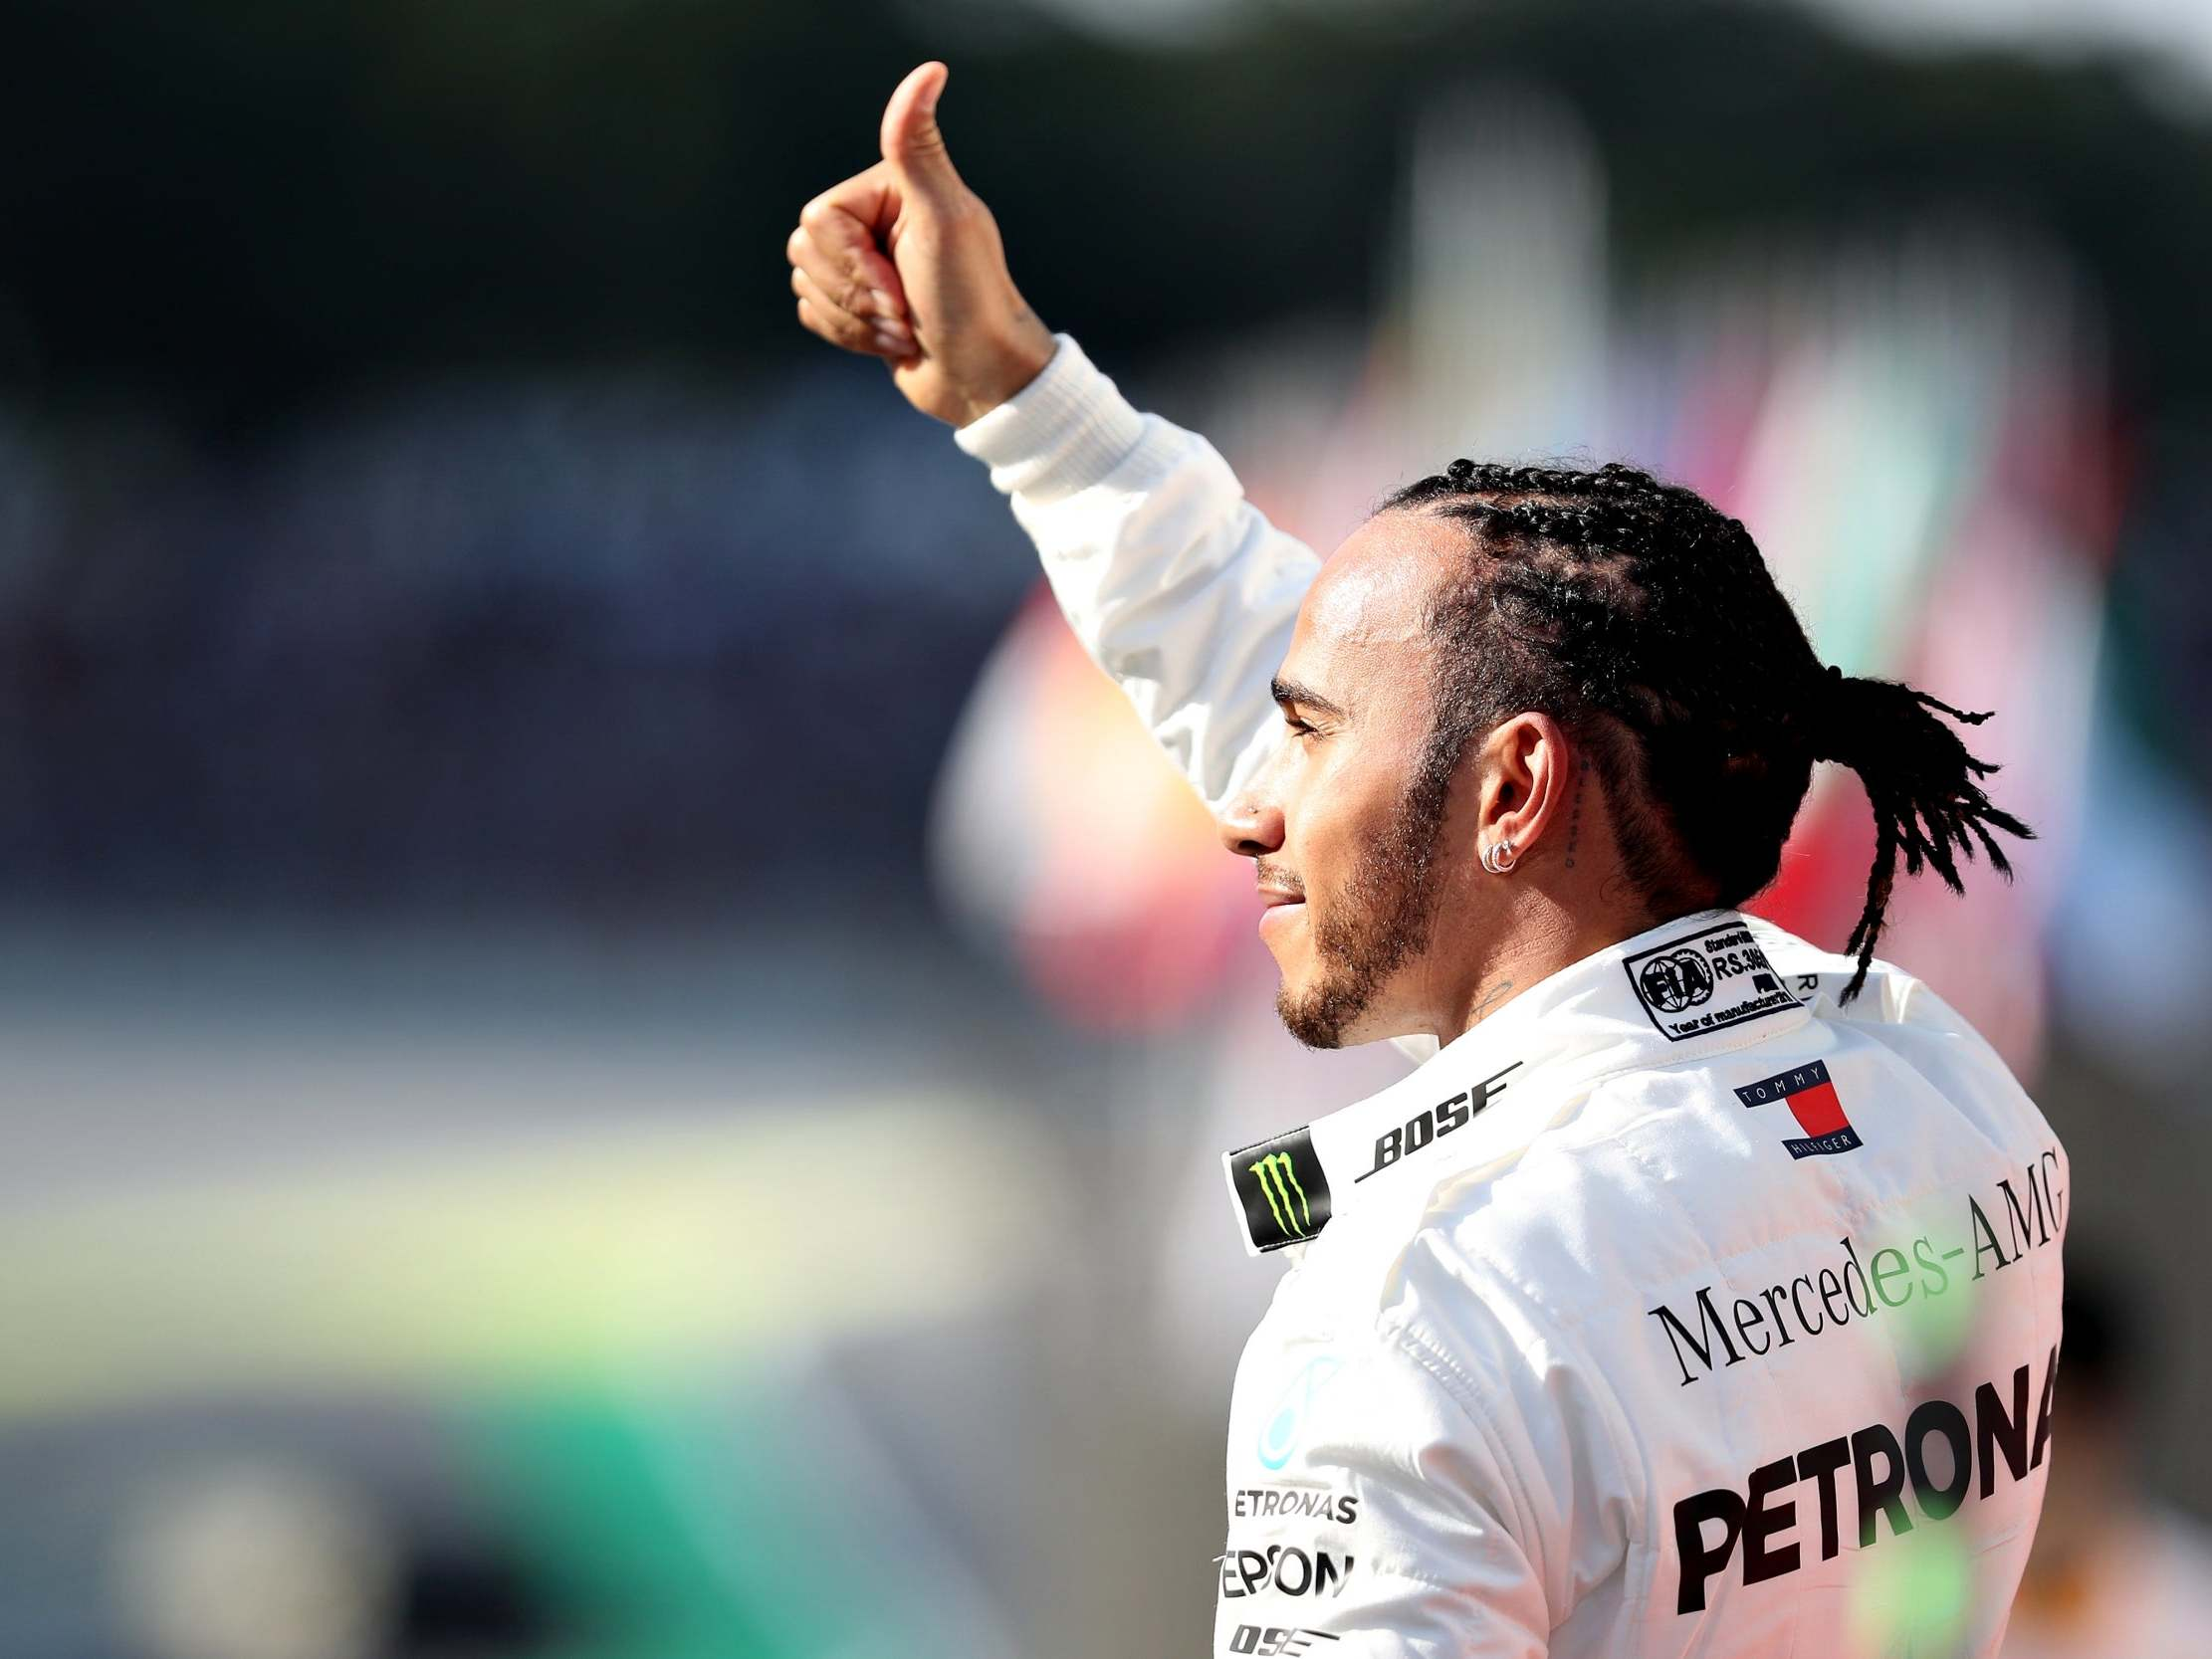 Brazilian Grand Prix: Lewis Hamilton dismisses talk of knighthood following sixth F1 title